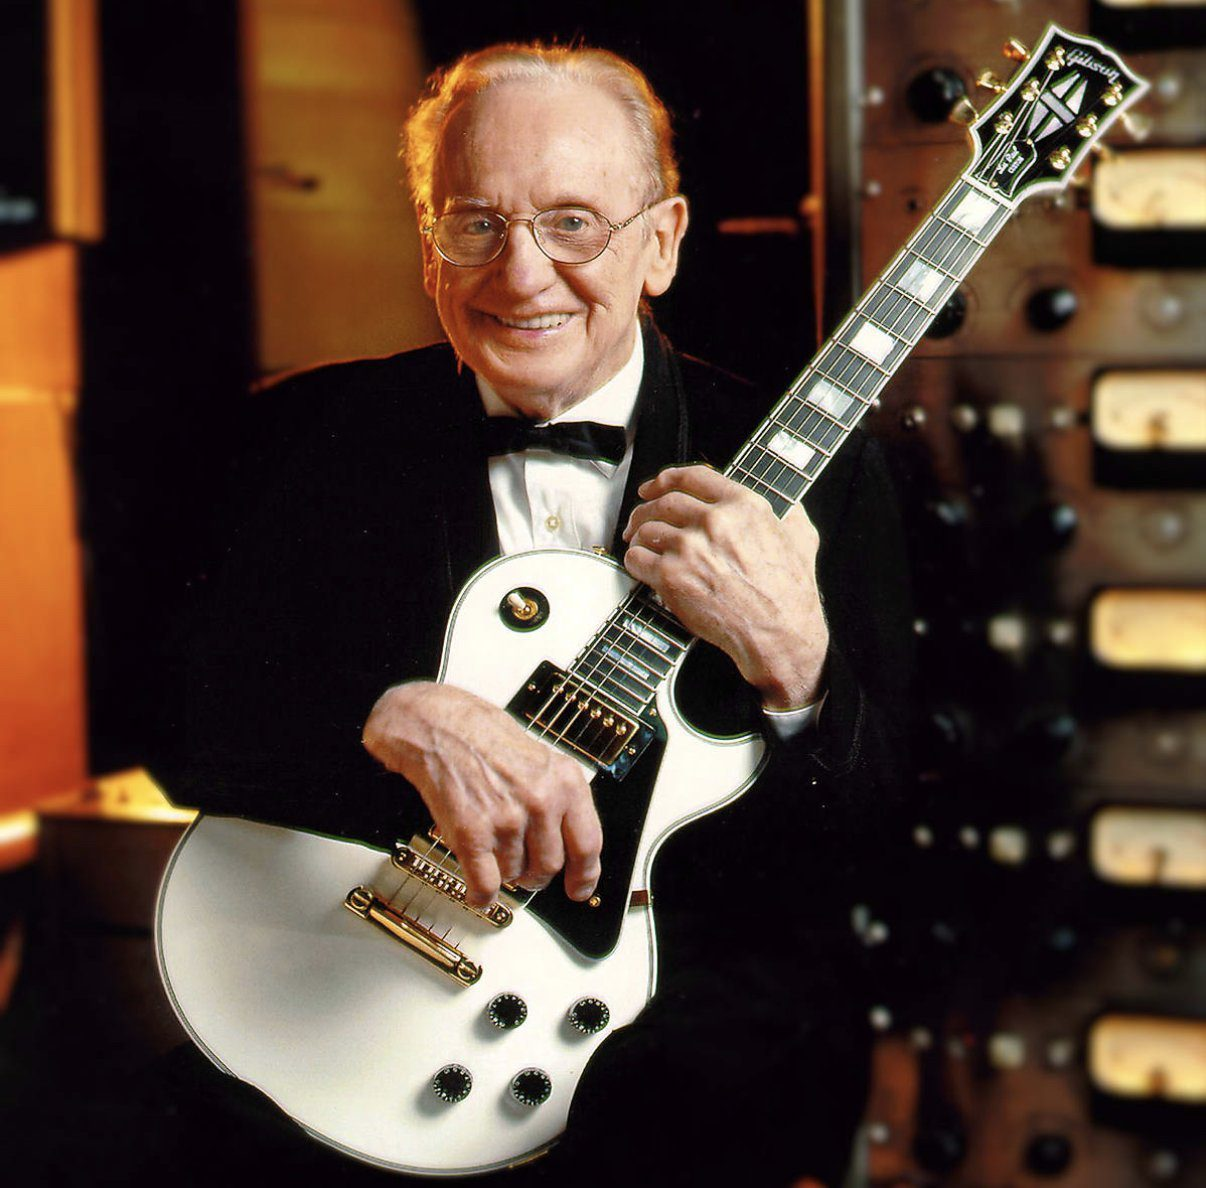 Les-Paul-with-his-one-off-2002-White-LP